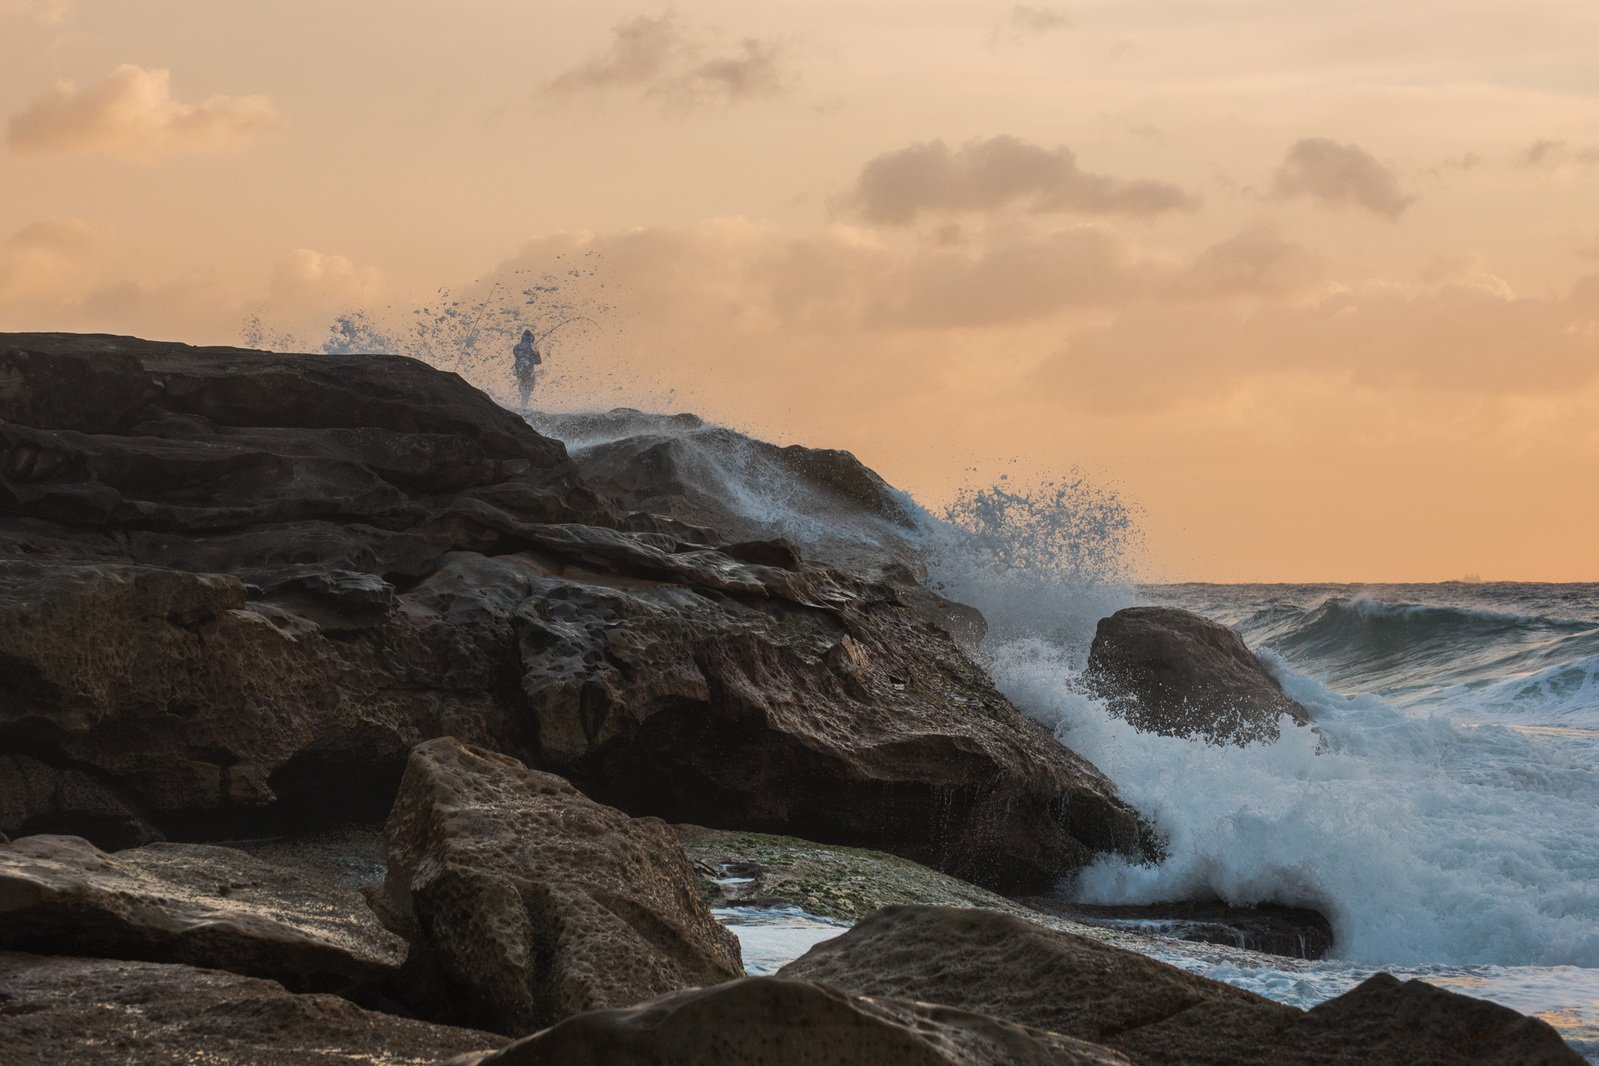 Rock fishing on the cliff with big waves